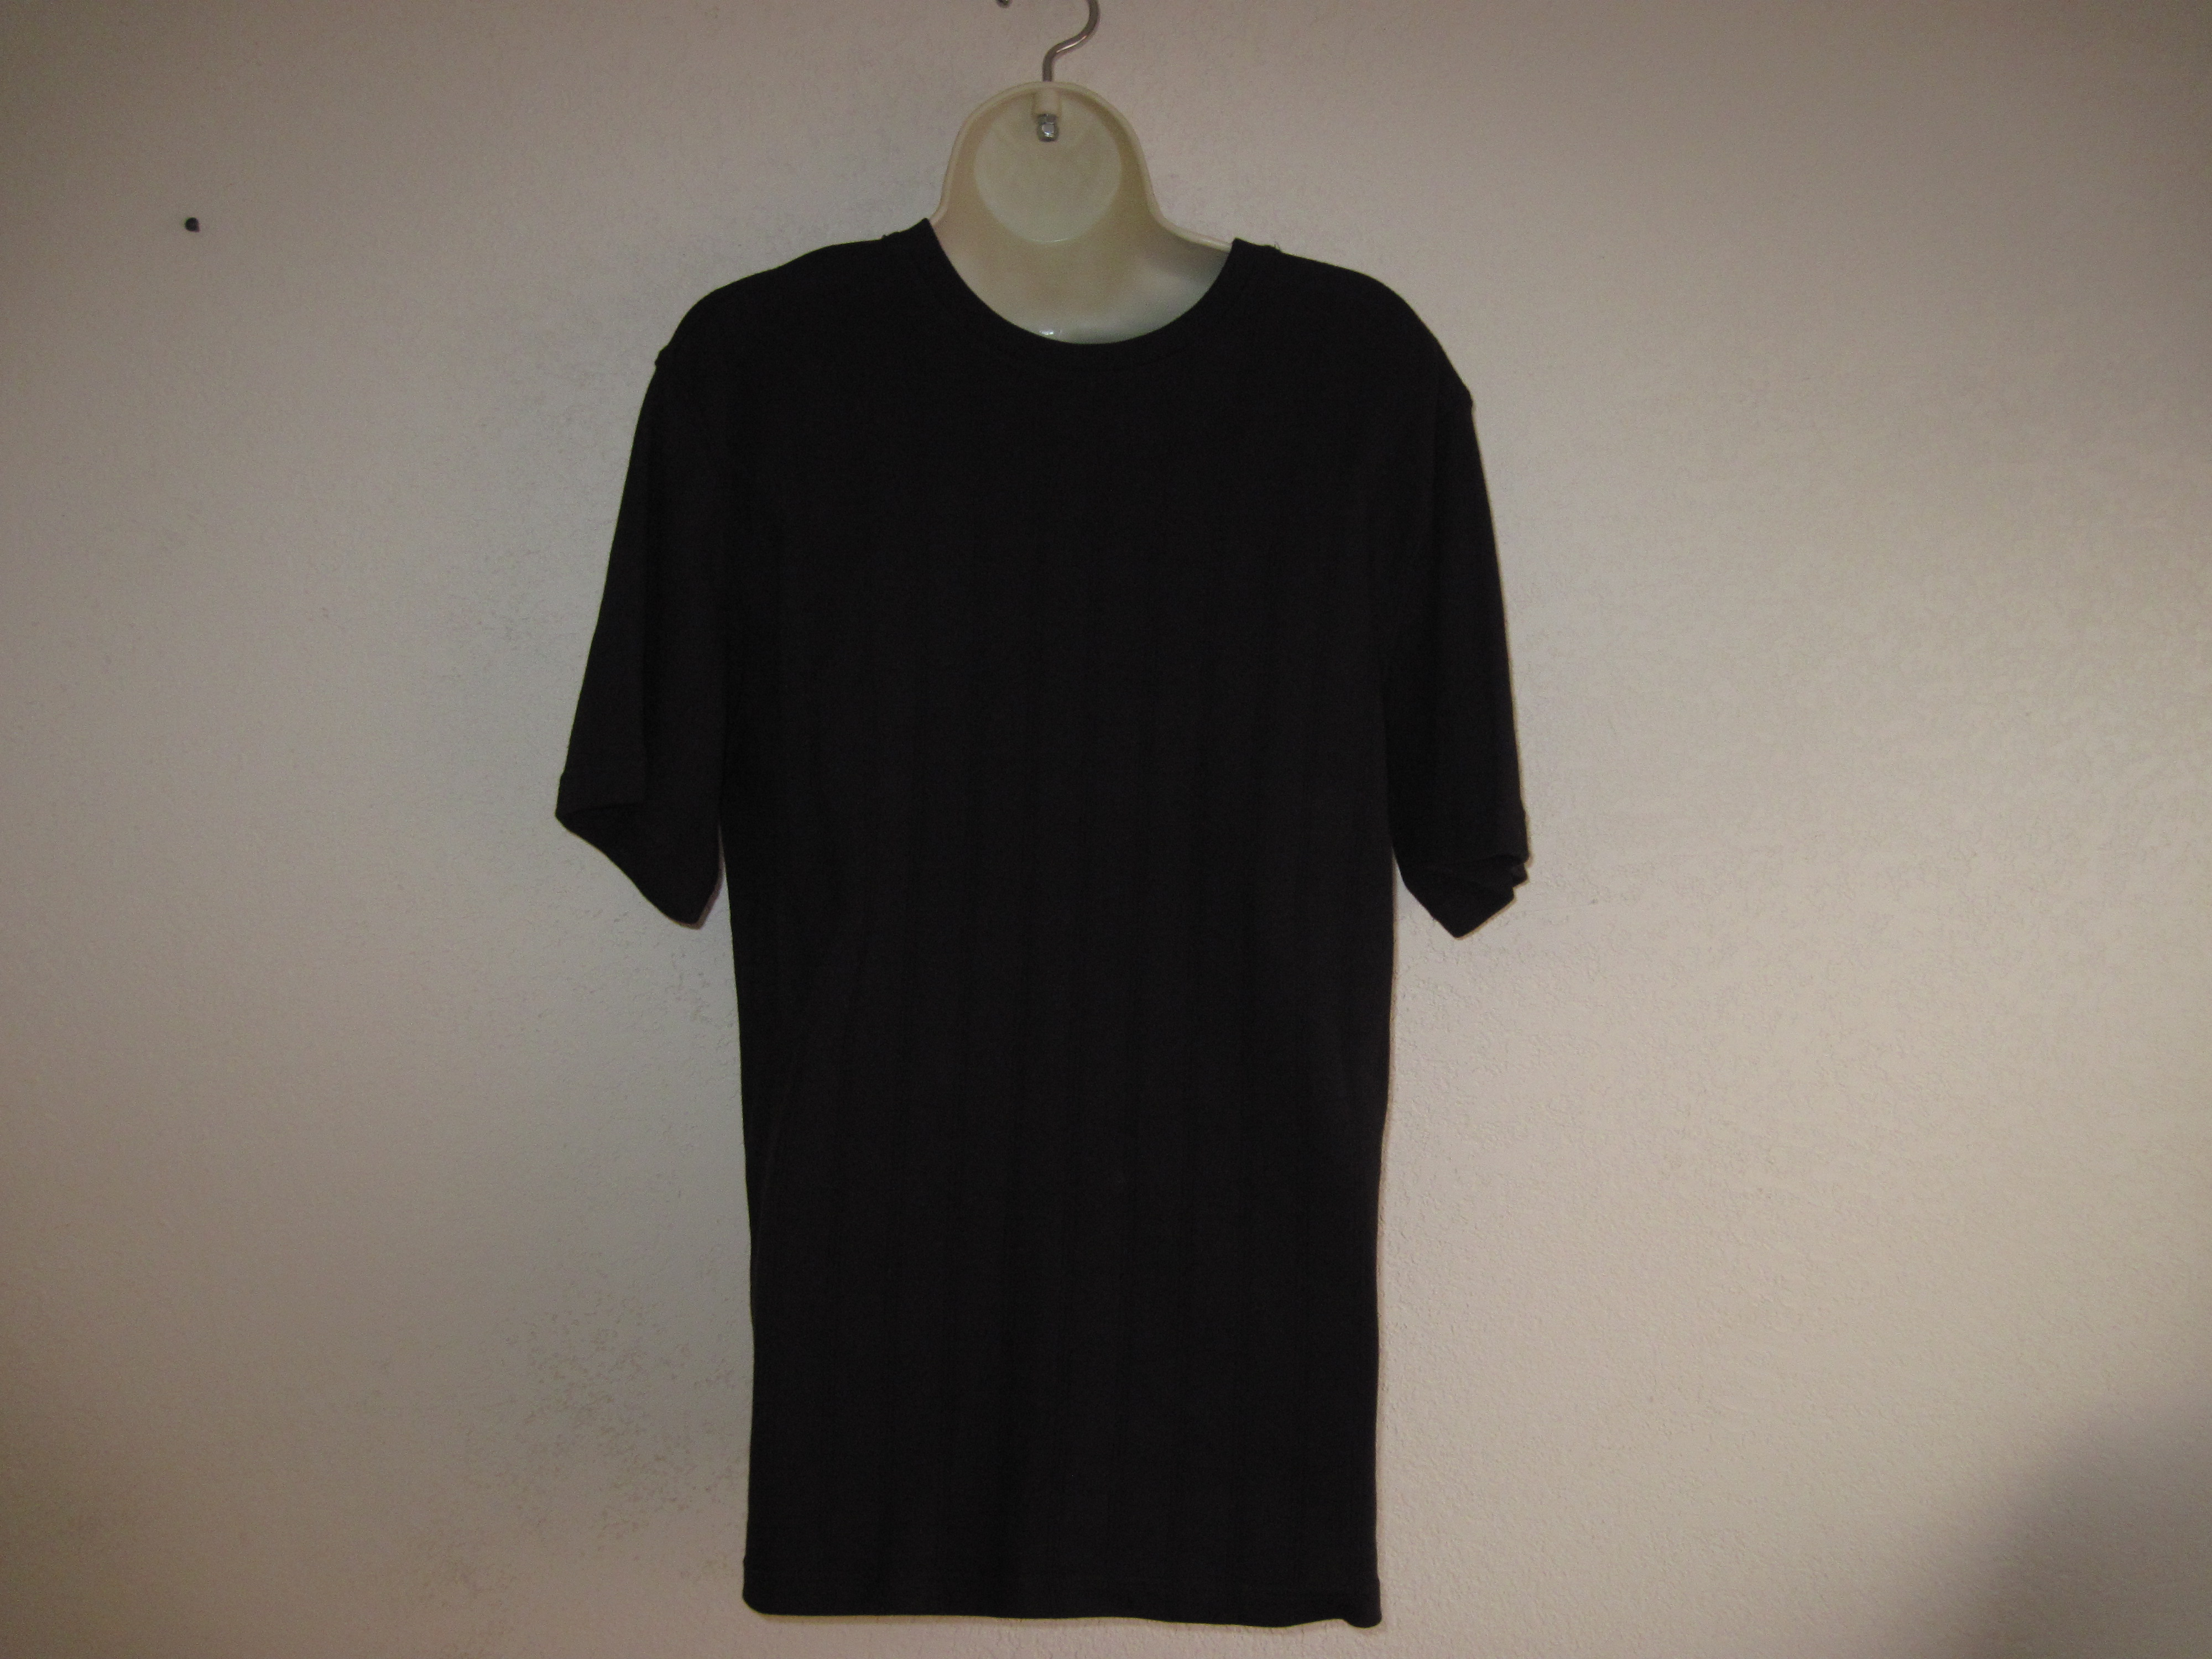 David Taylor Sz S Mens Shirt ( Drop needle Crew)Black